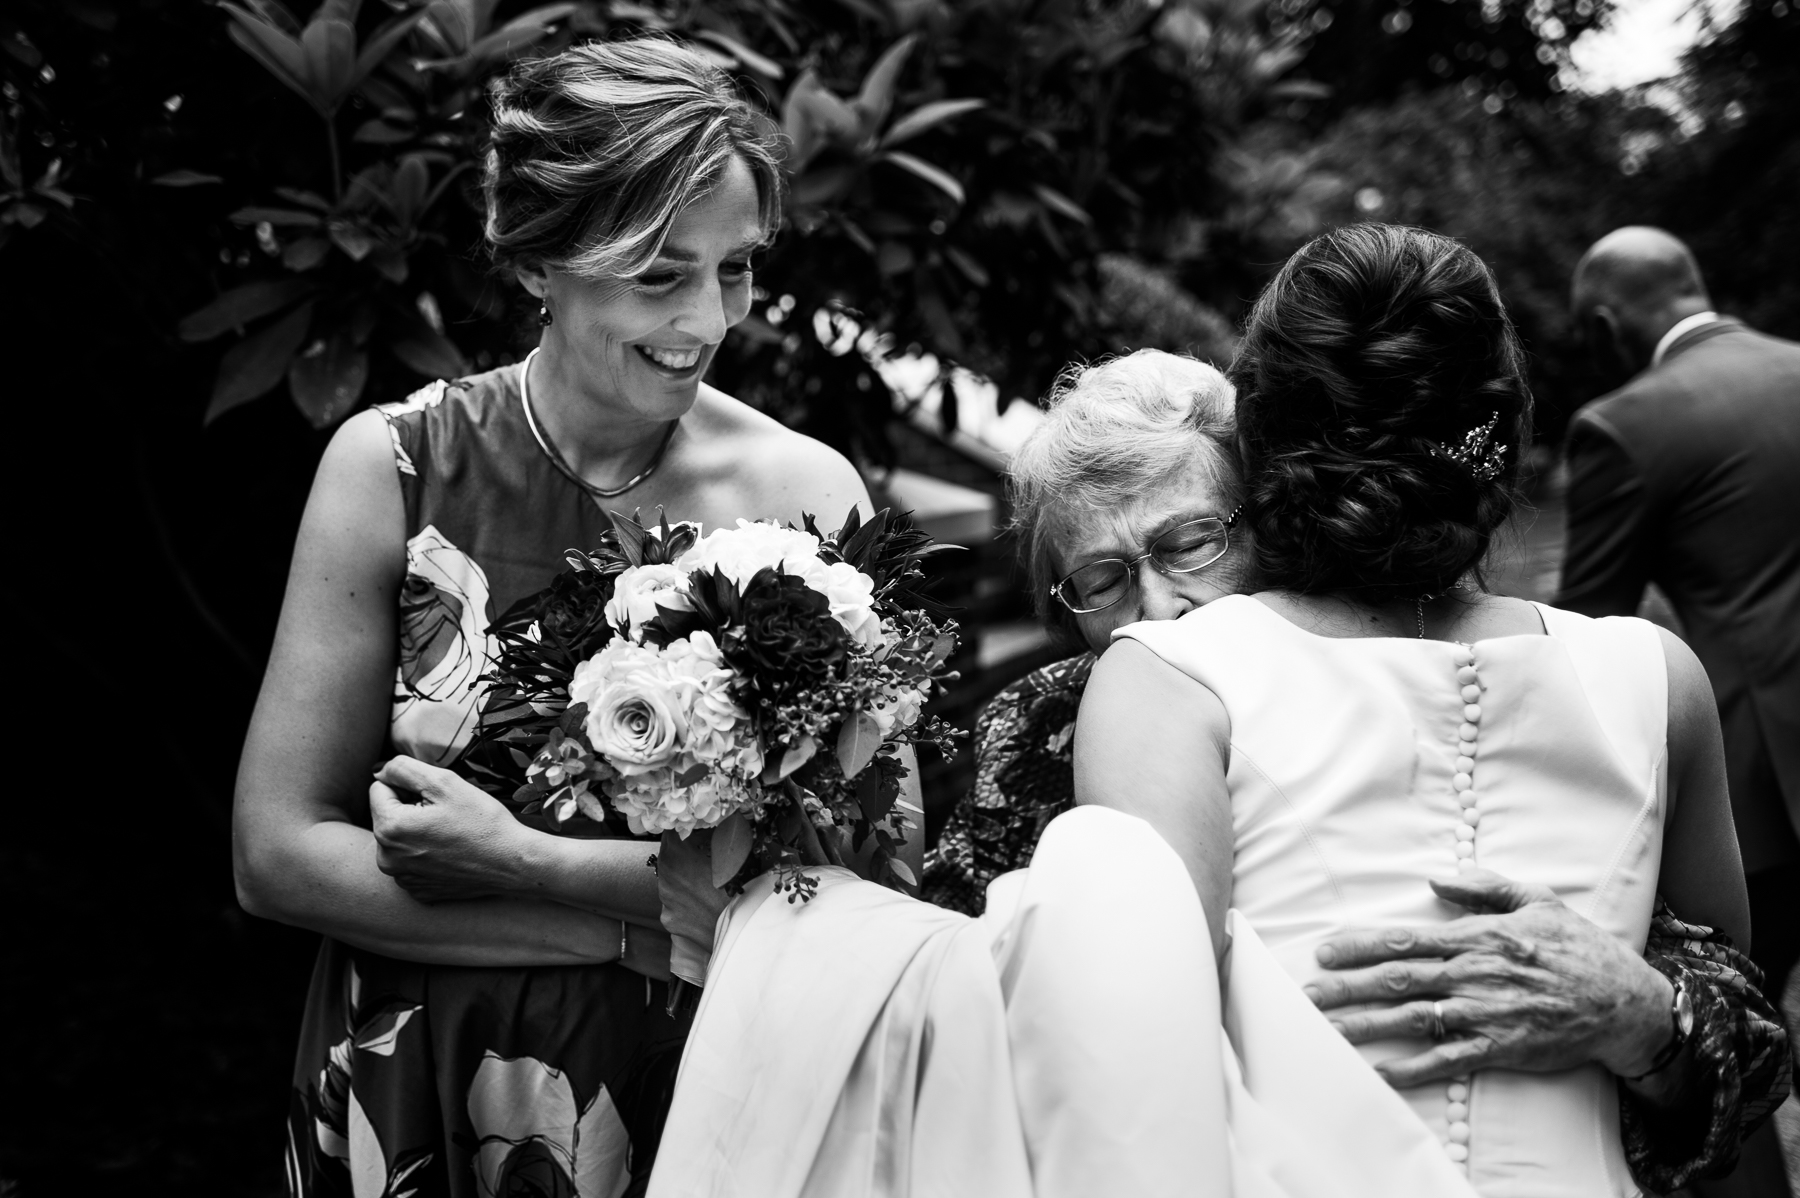 grandma moment with bride